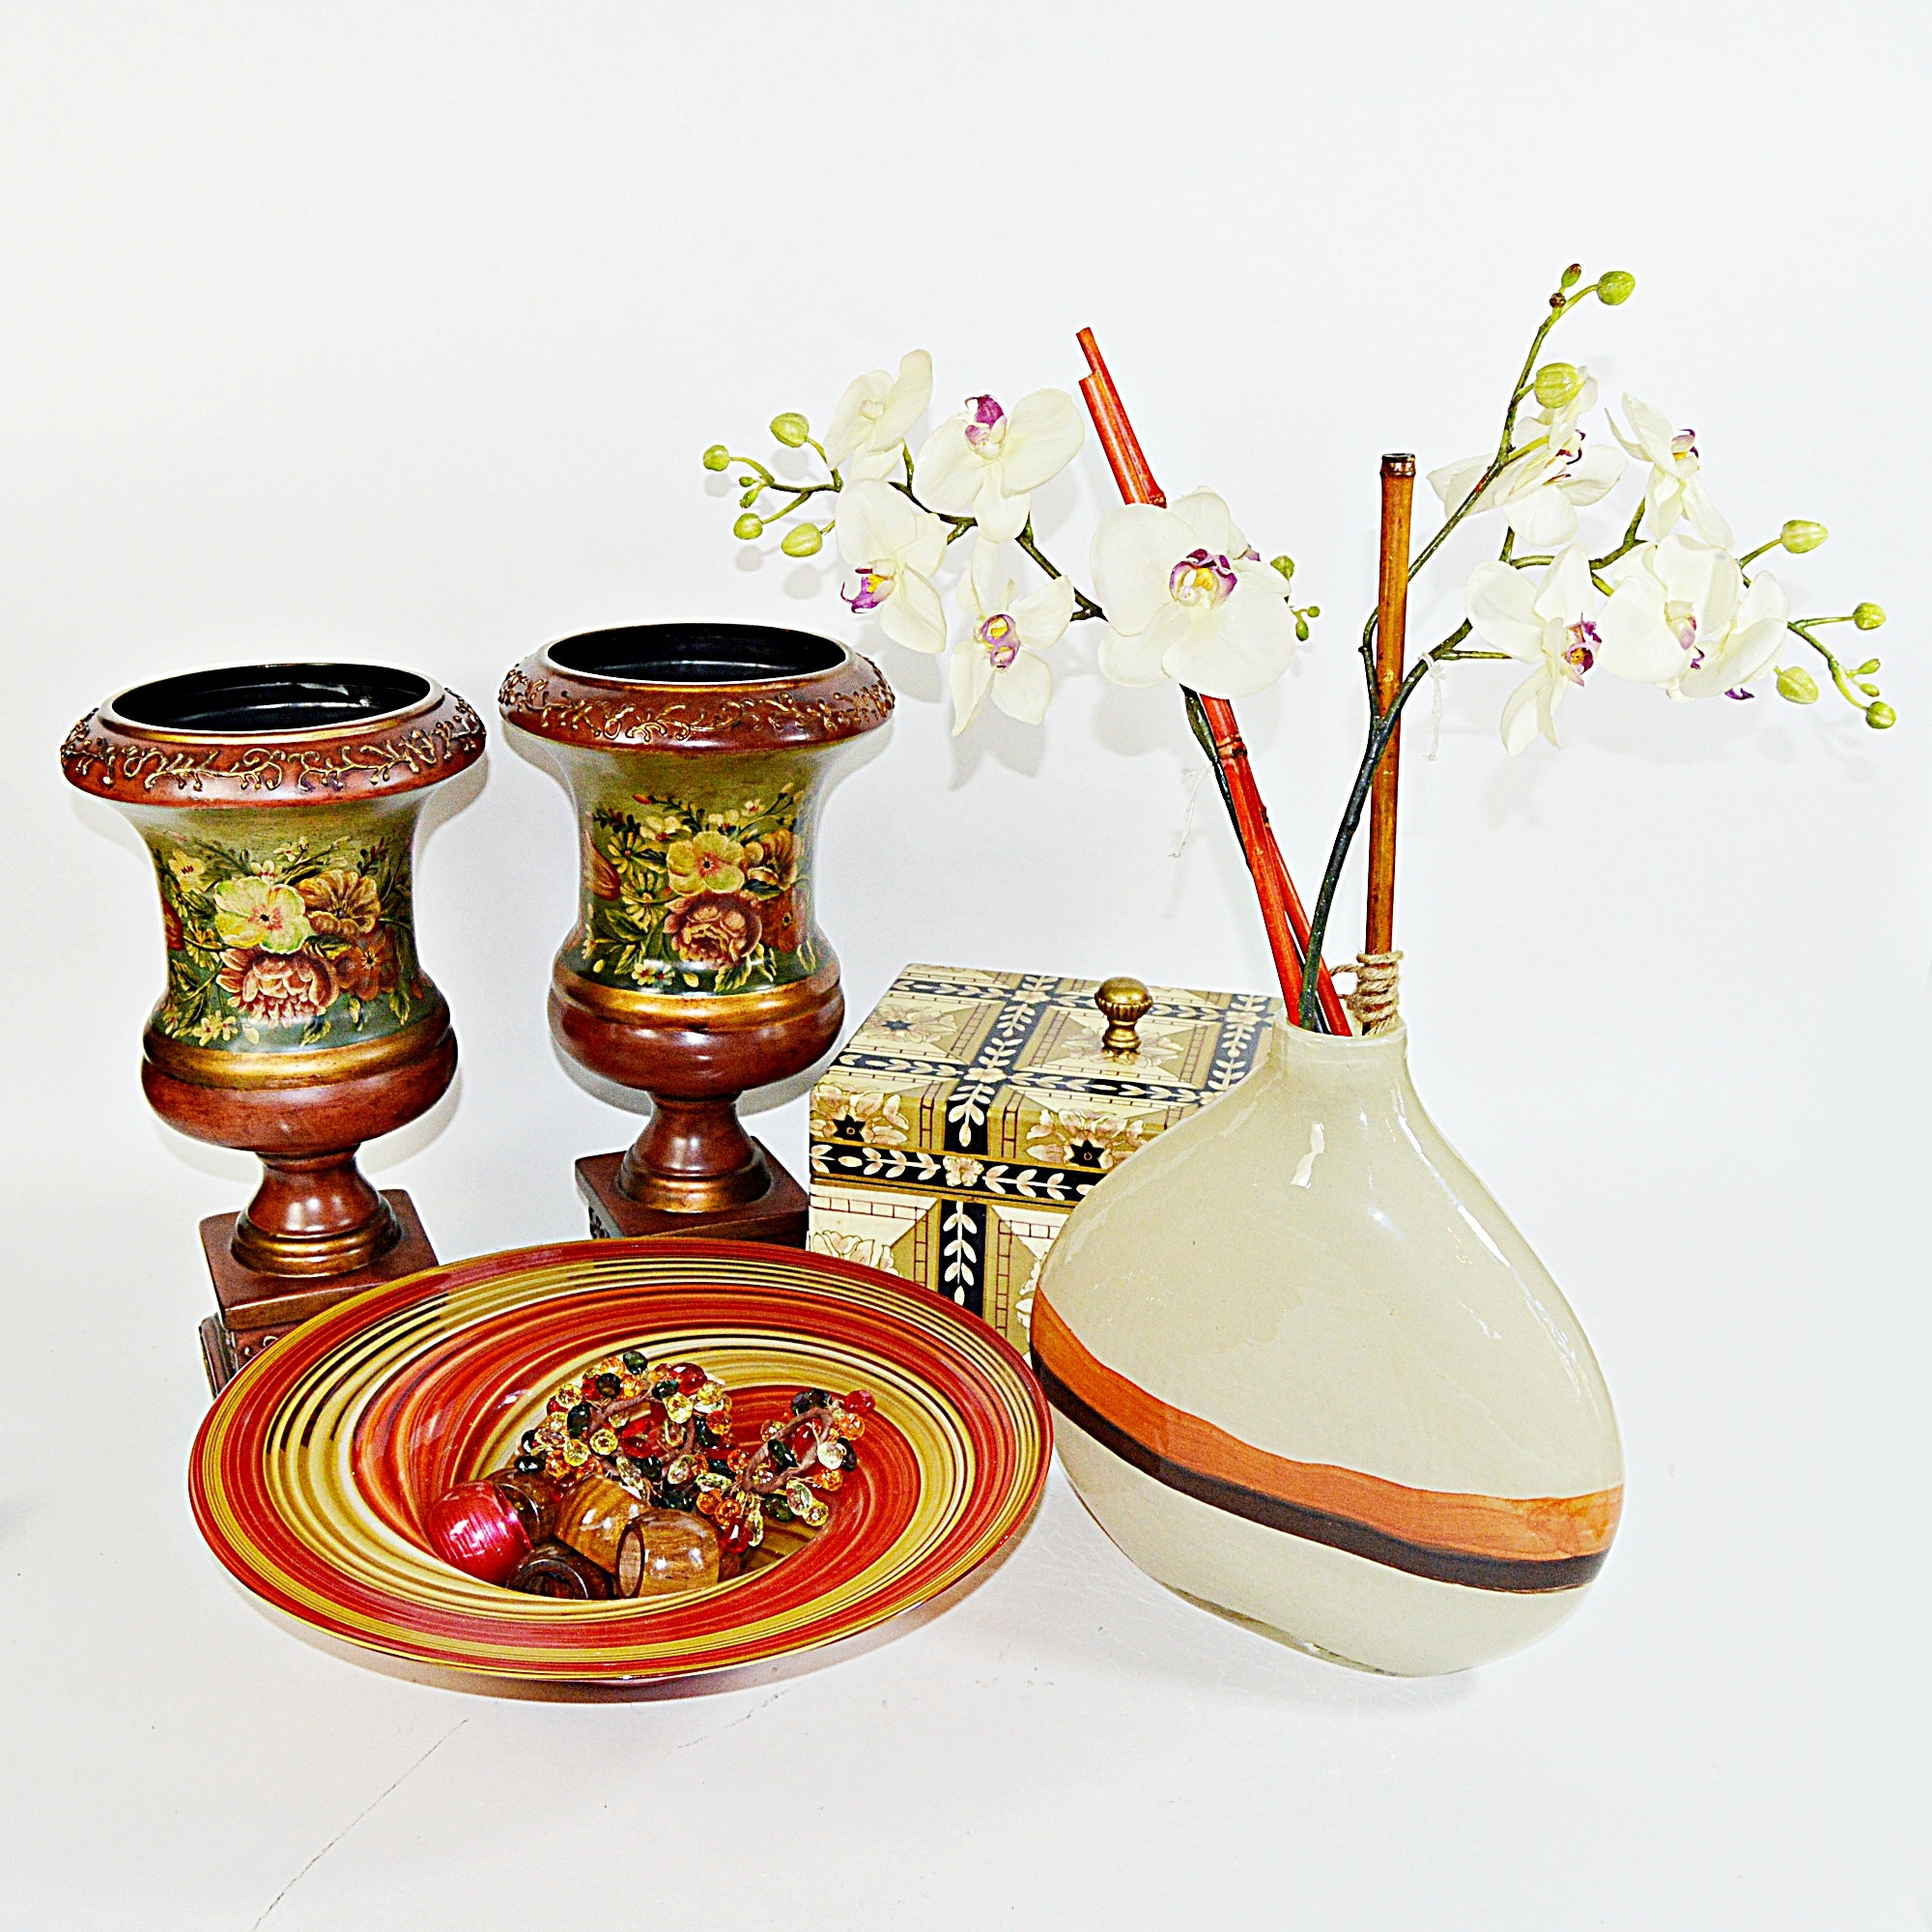 Decor Group with Painted Urns, Inlay Box, Modern Glass Bowl and Vase